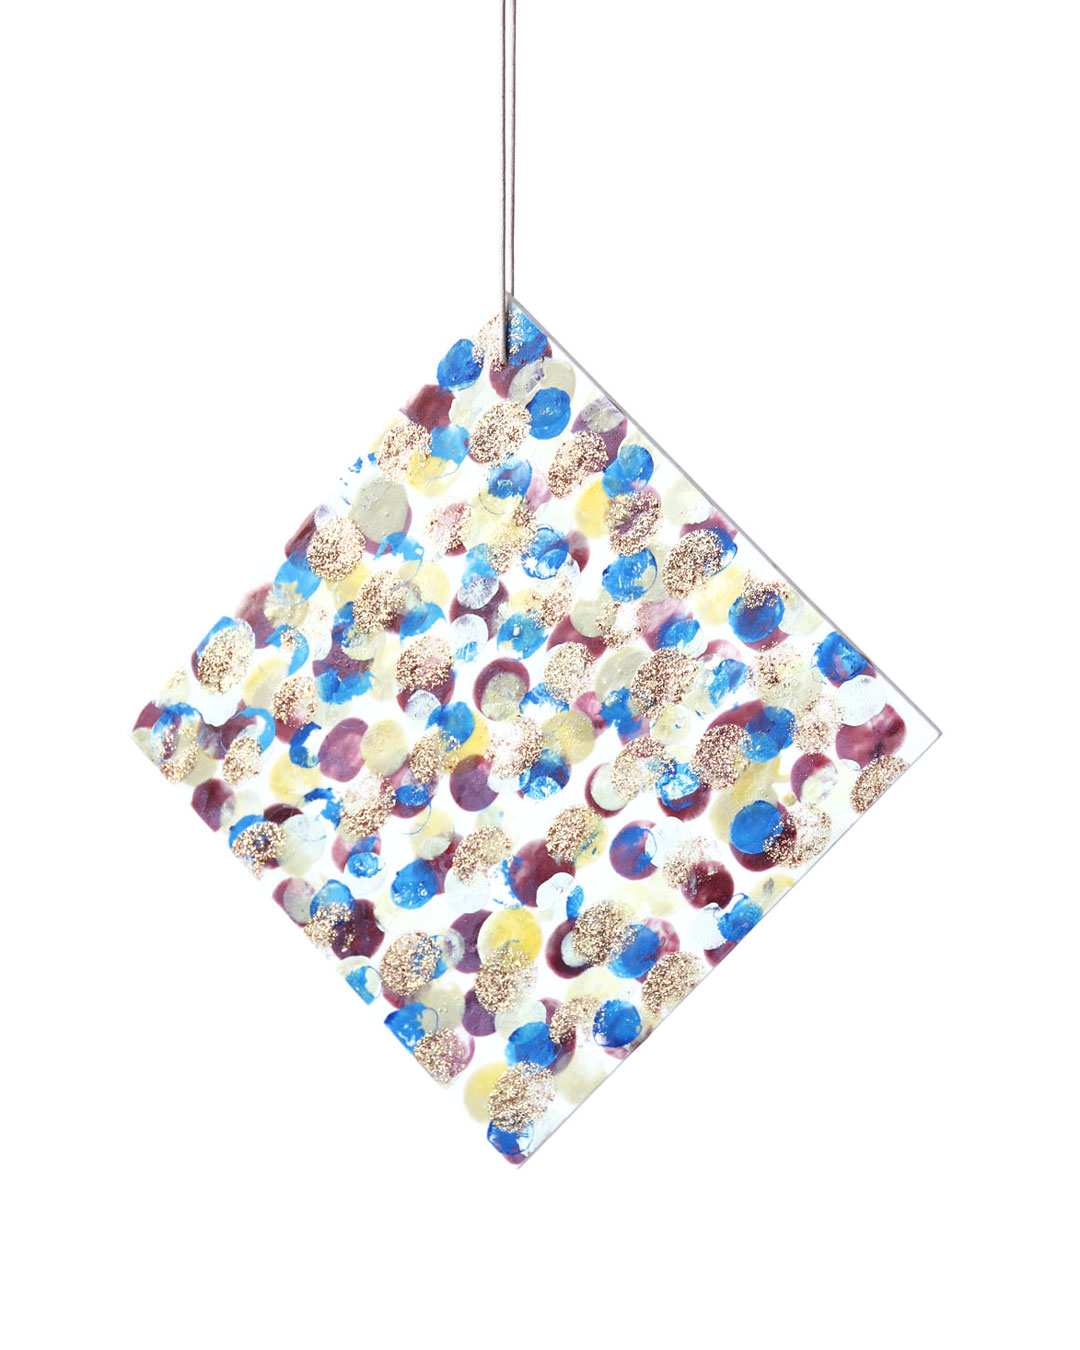 Julia Walter, Camouflage, 2014, pendant; Galalith, paint, cotton string, 200 x 200 x 5 mm, €1550